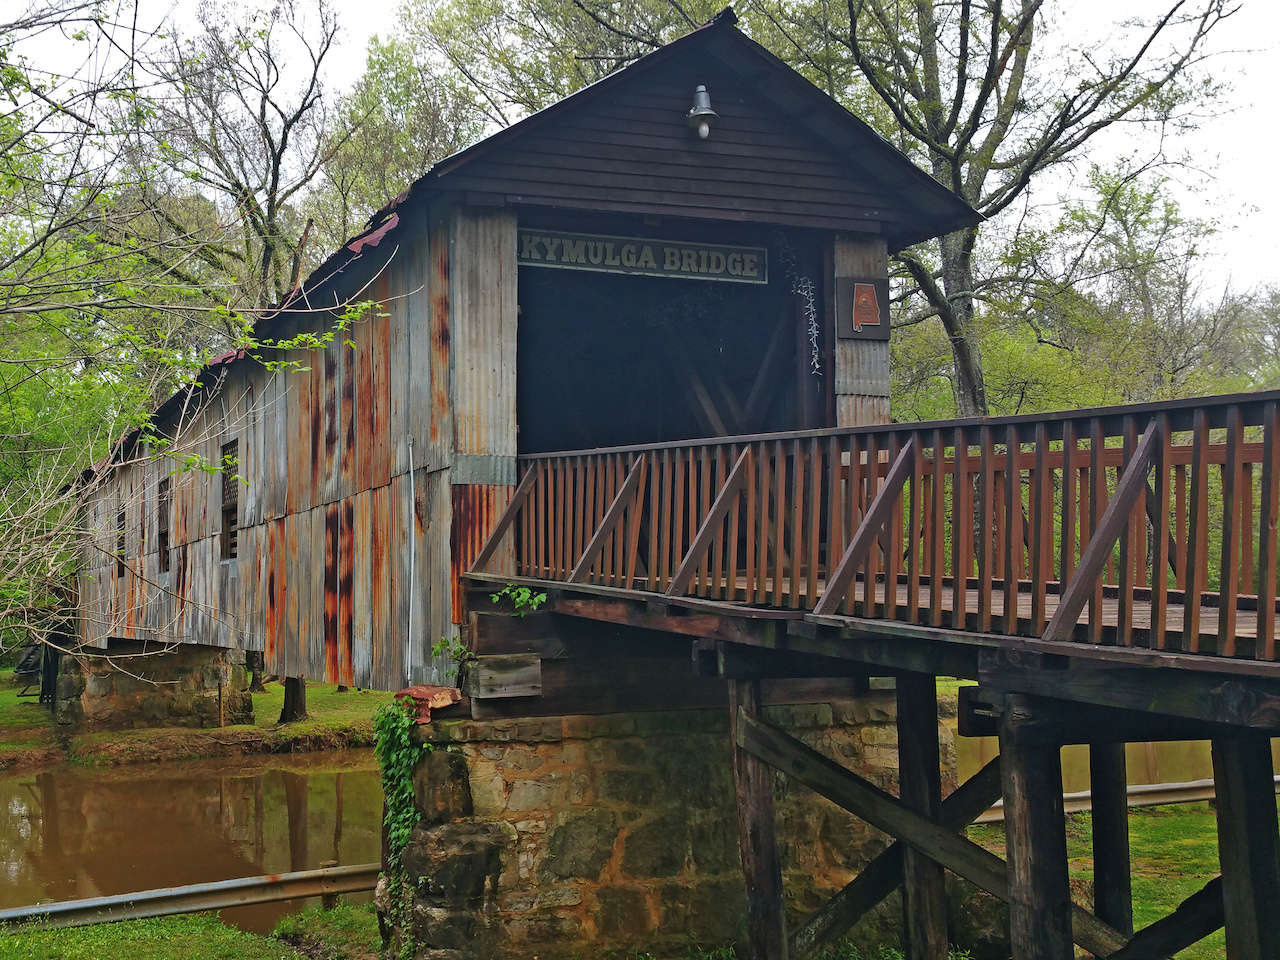 The tin siding of the Kymulga Bridge was added for economic and liability reasons.